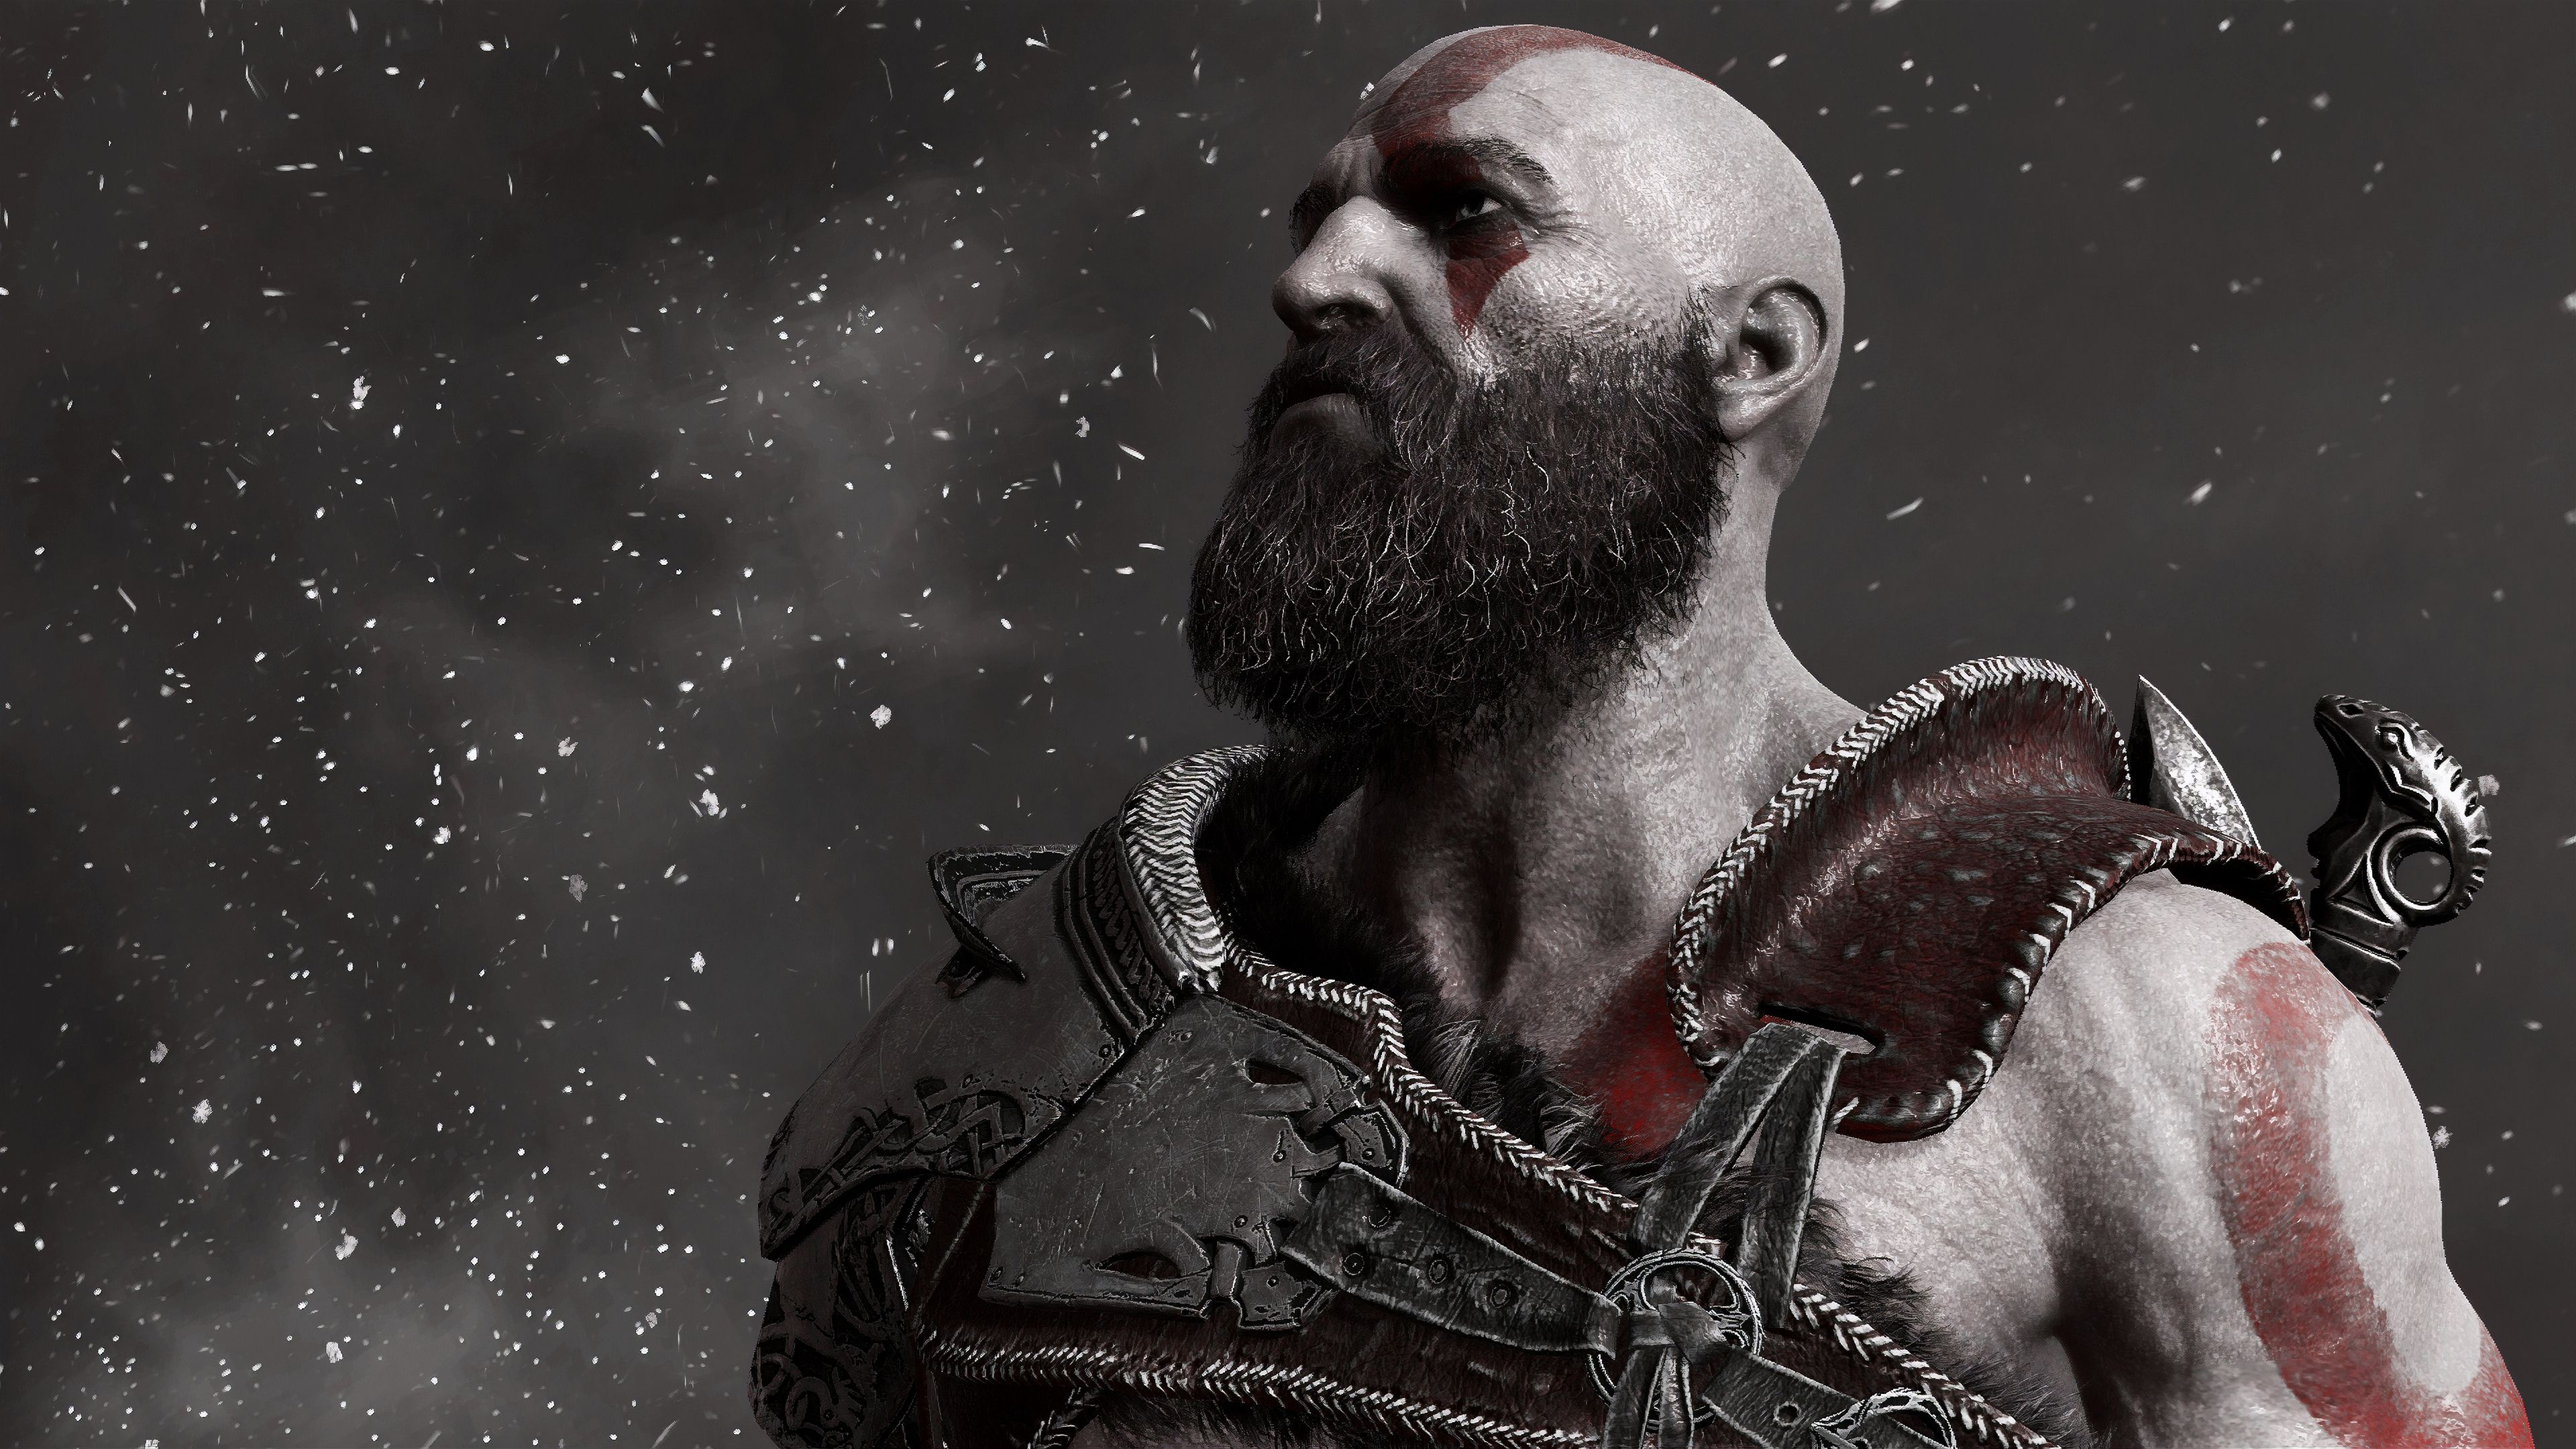 God Of War 4 4k ps games wallpapers, kratos wallpapers, hd-wallpapers, god of war wallpapers, god of war 4 wallpapers… | God of war, Hd wallpaper, Kratos god of war